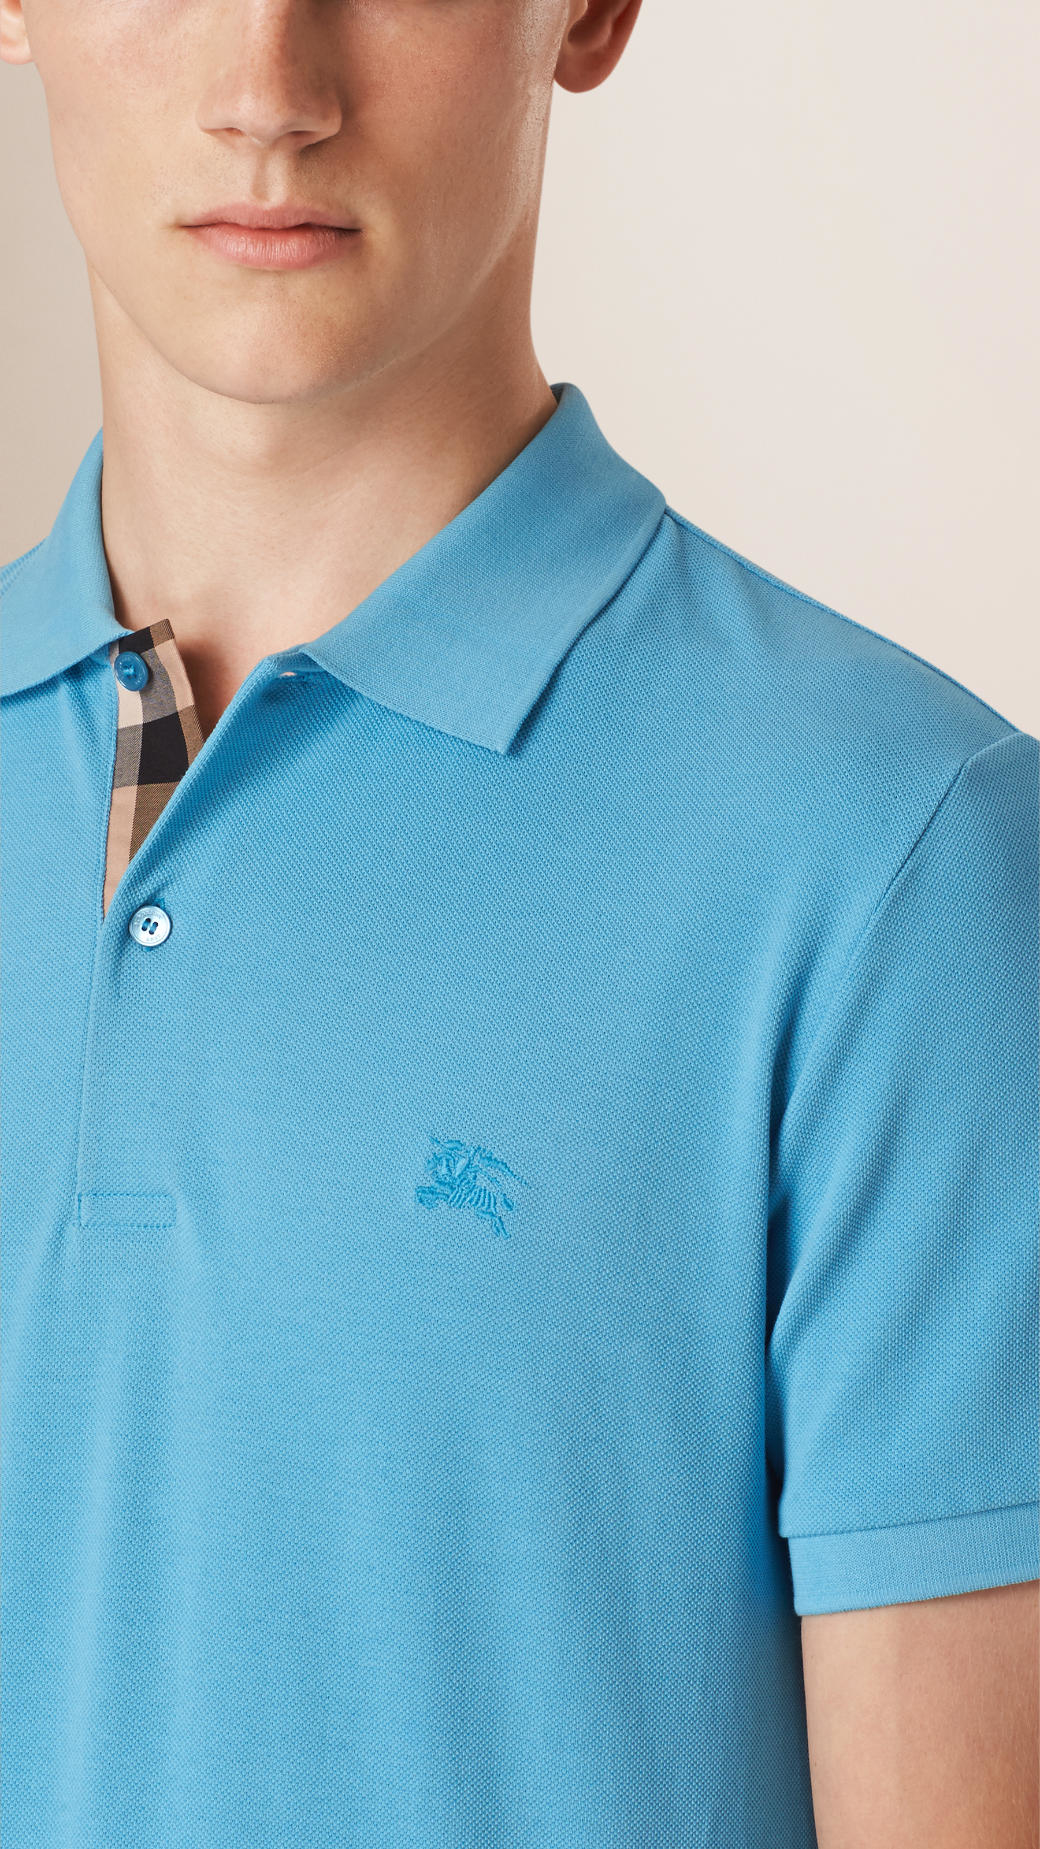 739025f68197 Lyst - Burberry Check Placket Cotton Piqué Polo Shirt Sky Blue in ...